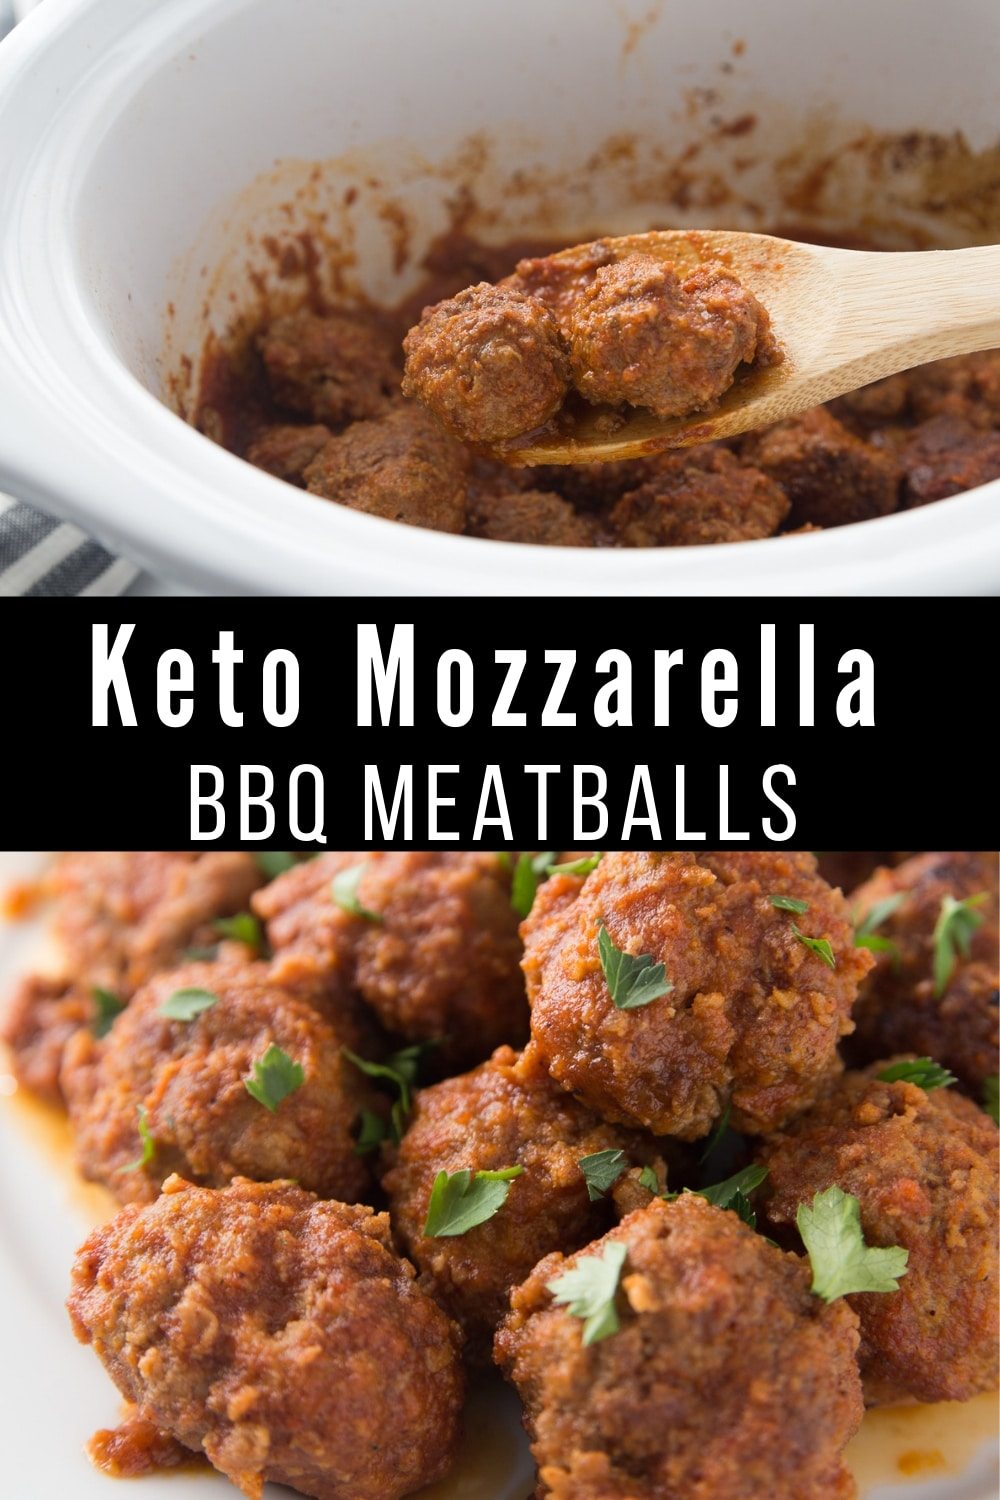 This quick and easy Low Carb recipe for Mozzarella Stuffed BBQ Meatballs is the Keto friendly slow cooker meal that the entire family will love. #keto #lowcarb